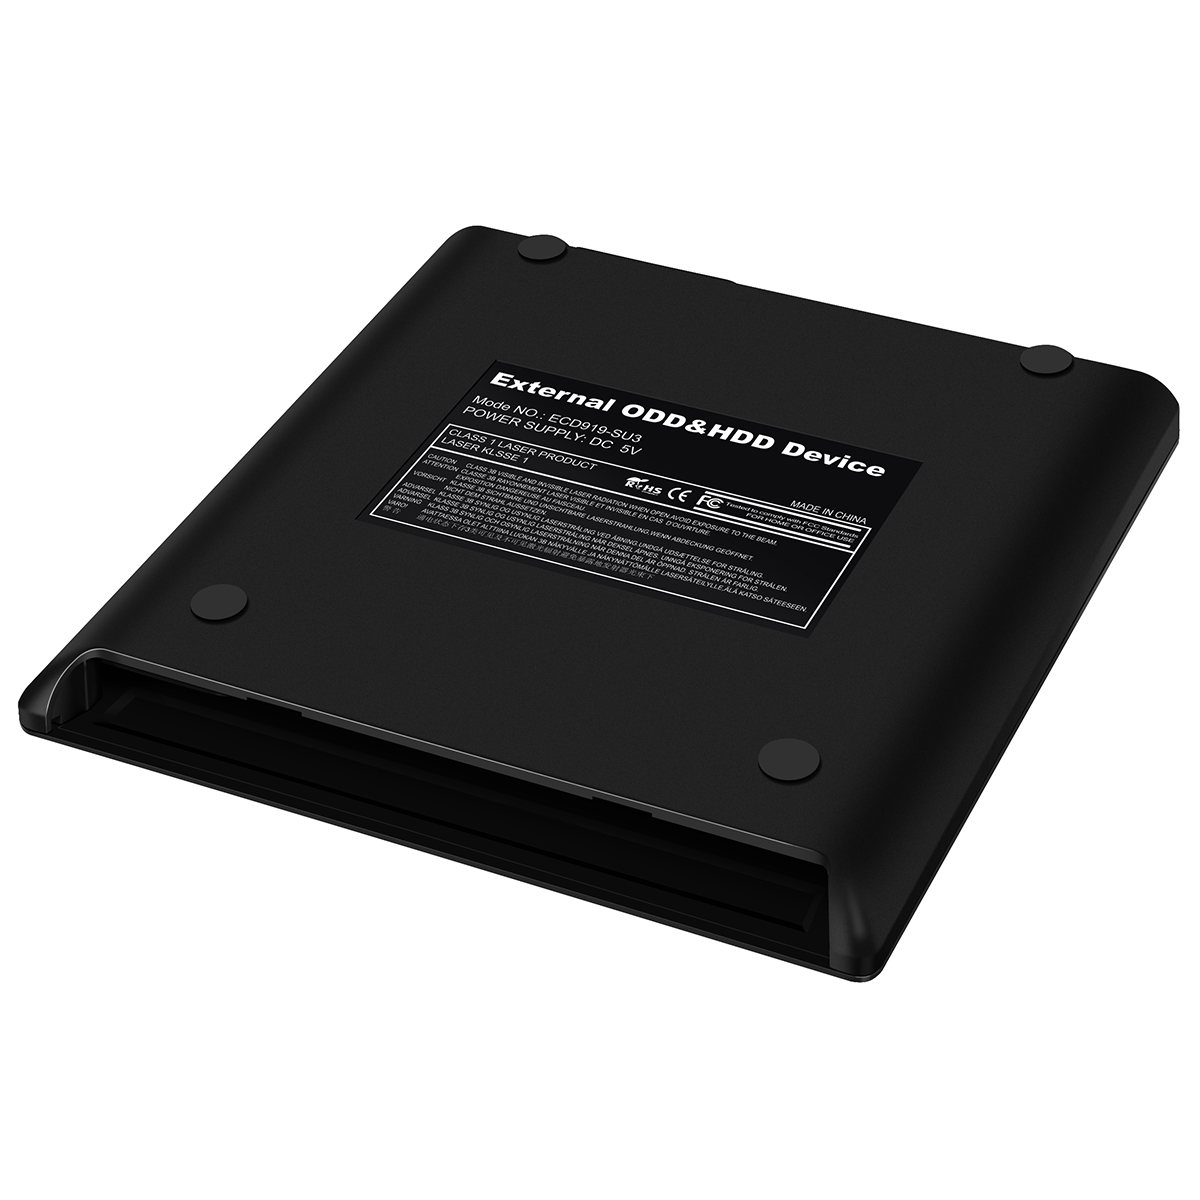 External Optical Drive Enclosure Product picture